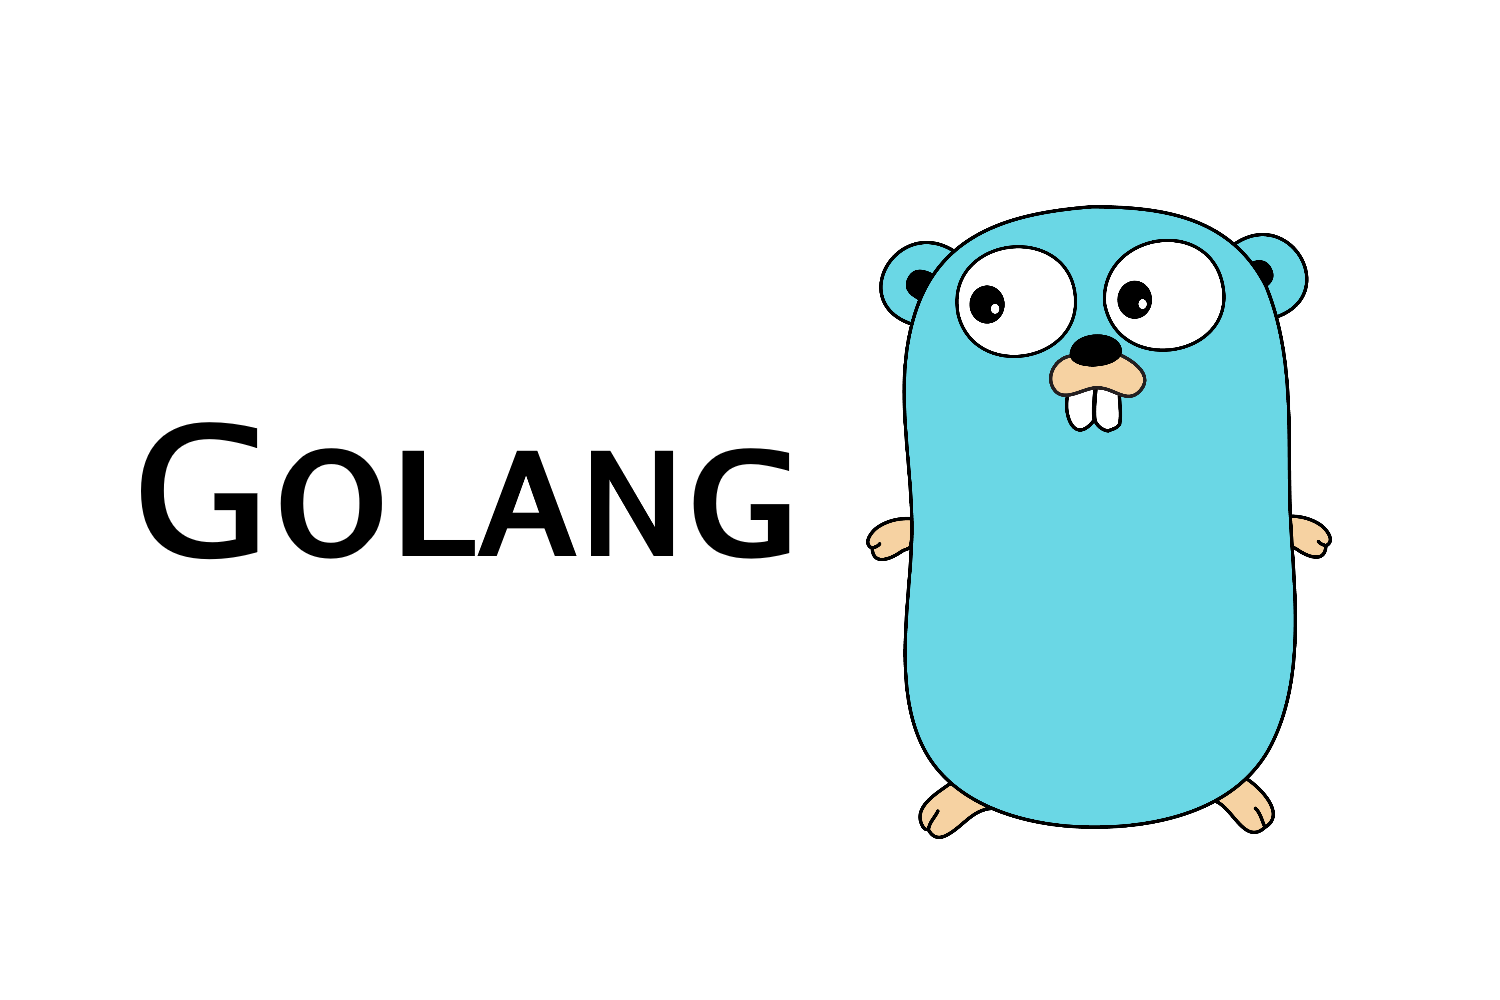 At last, the secrets of golang are revealed